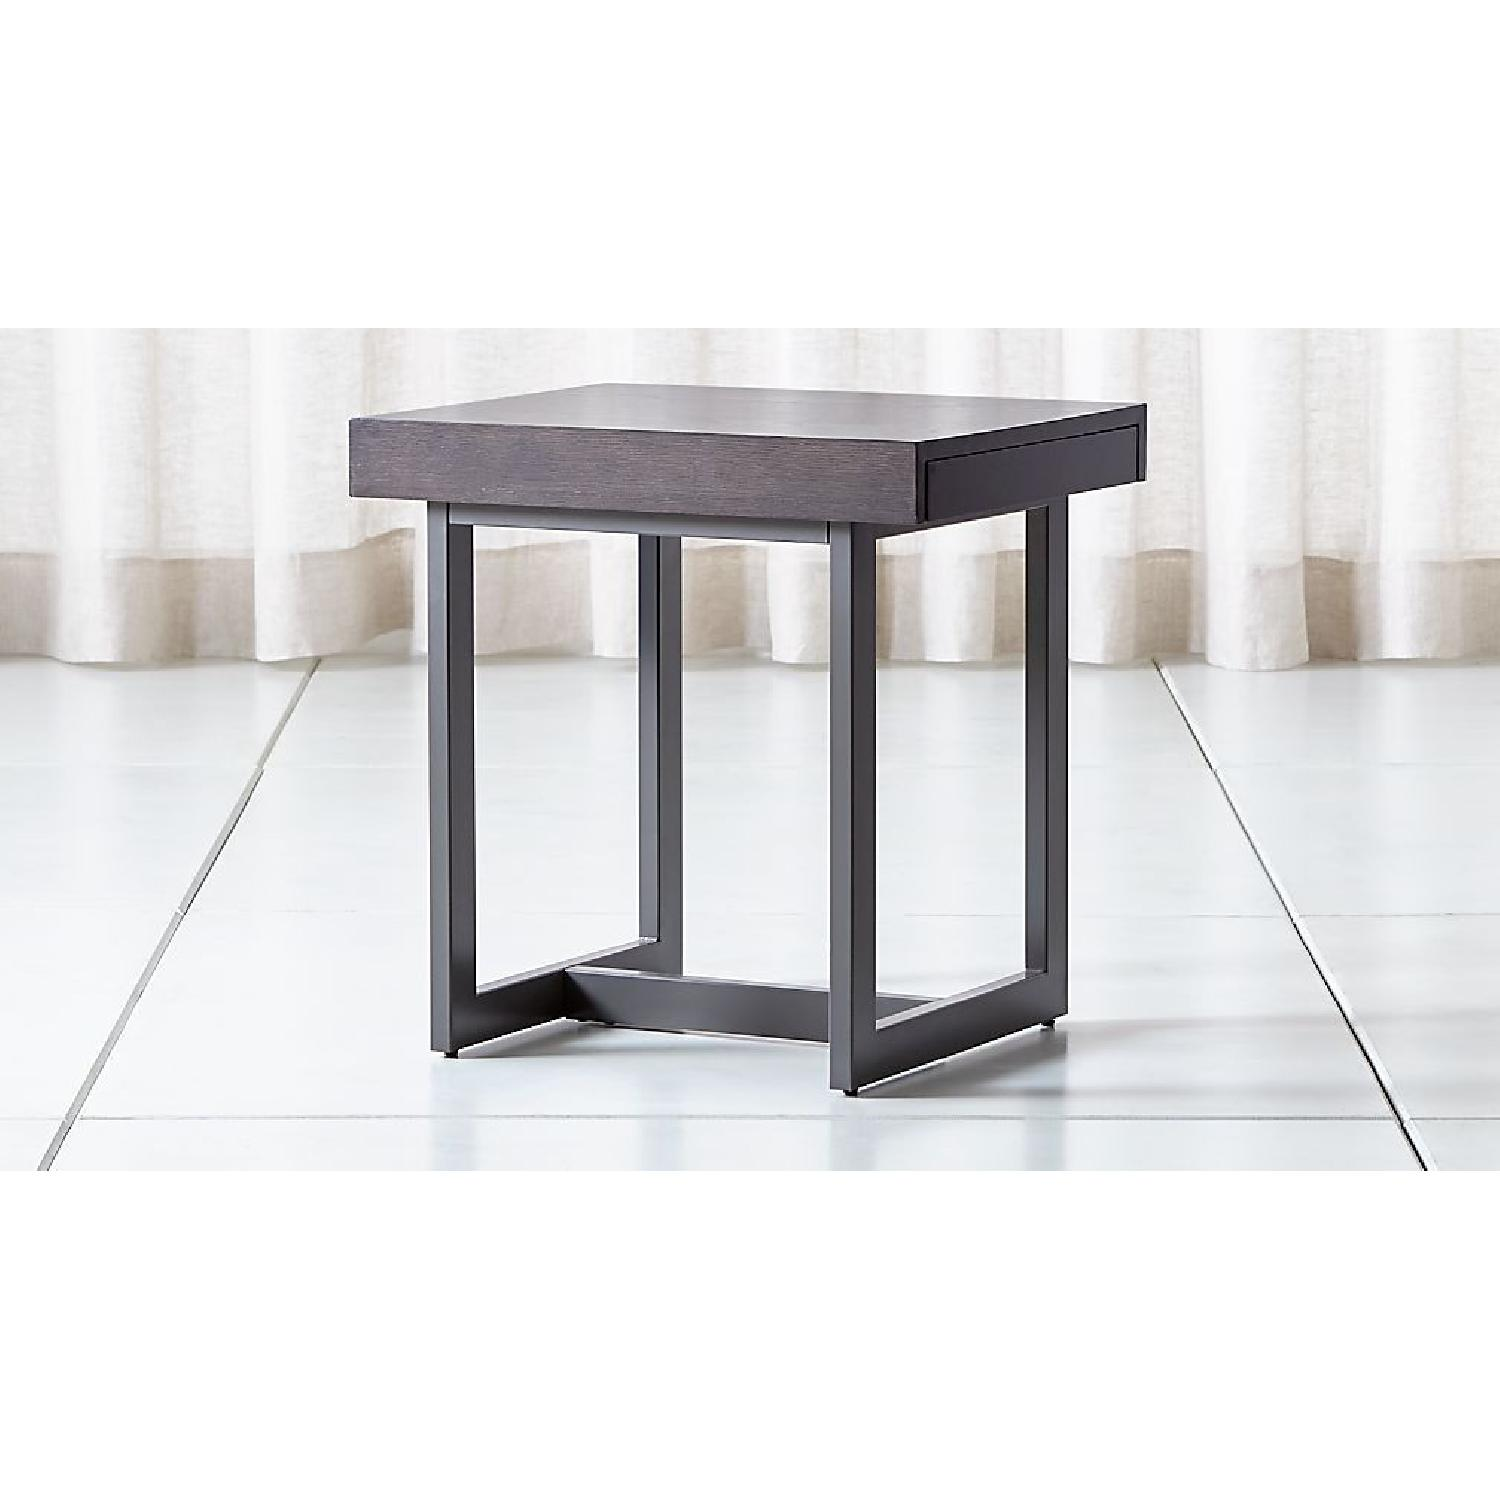 Crate & Barrel Archive End Table - image-4